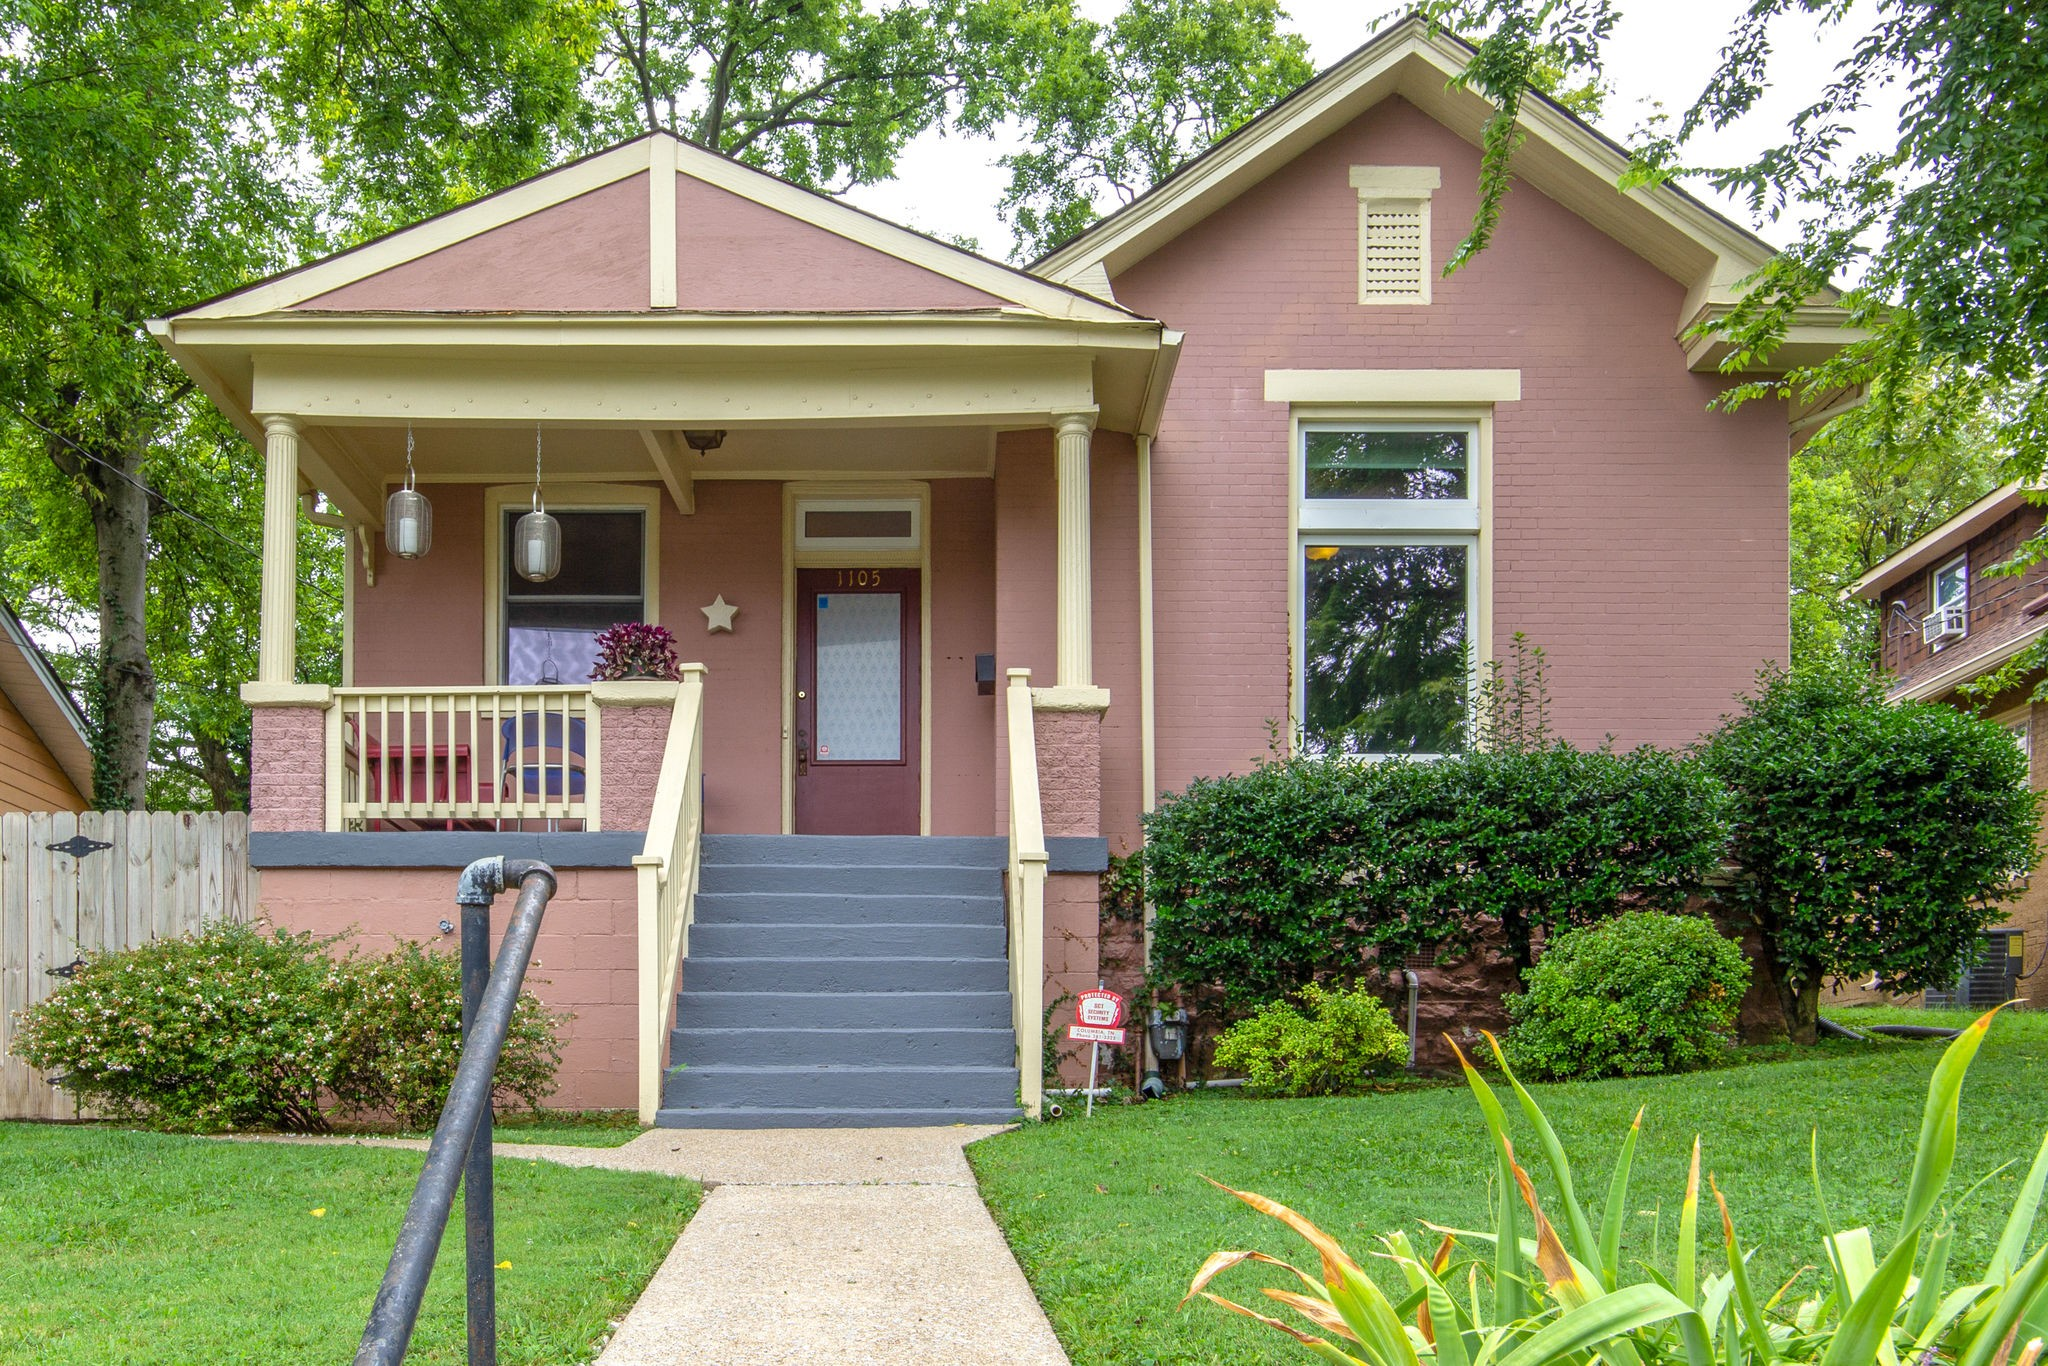 1105 Acklen Ave, Nashville - Midtown in Davidson County, TN County, TN 37203 Home for Sale